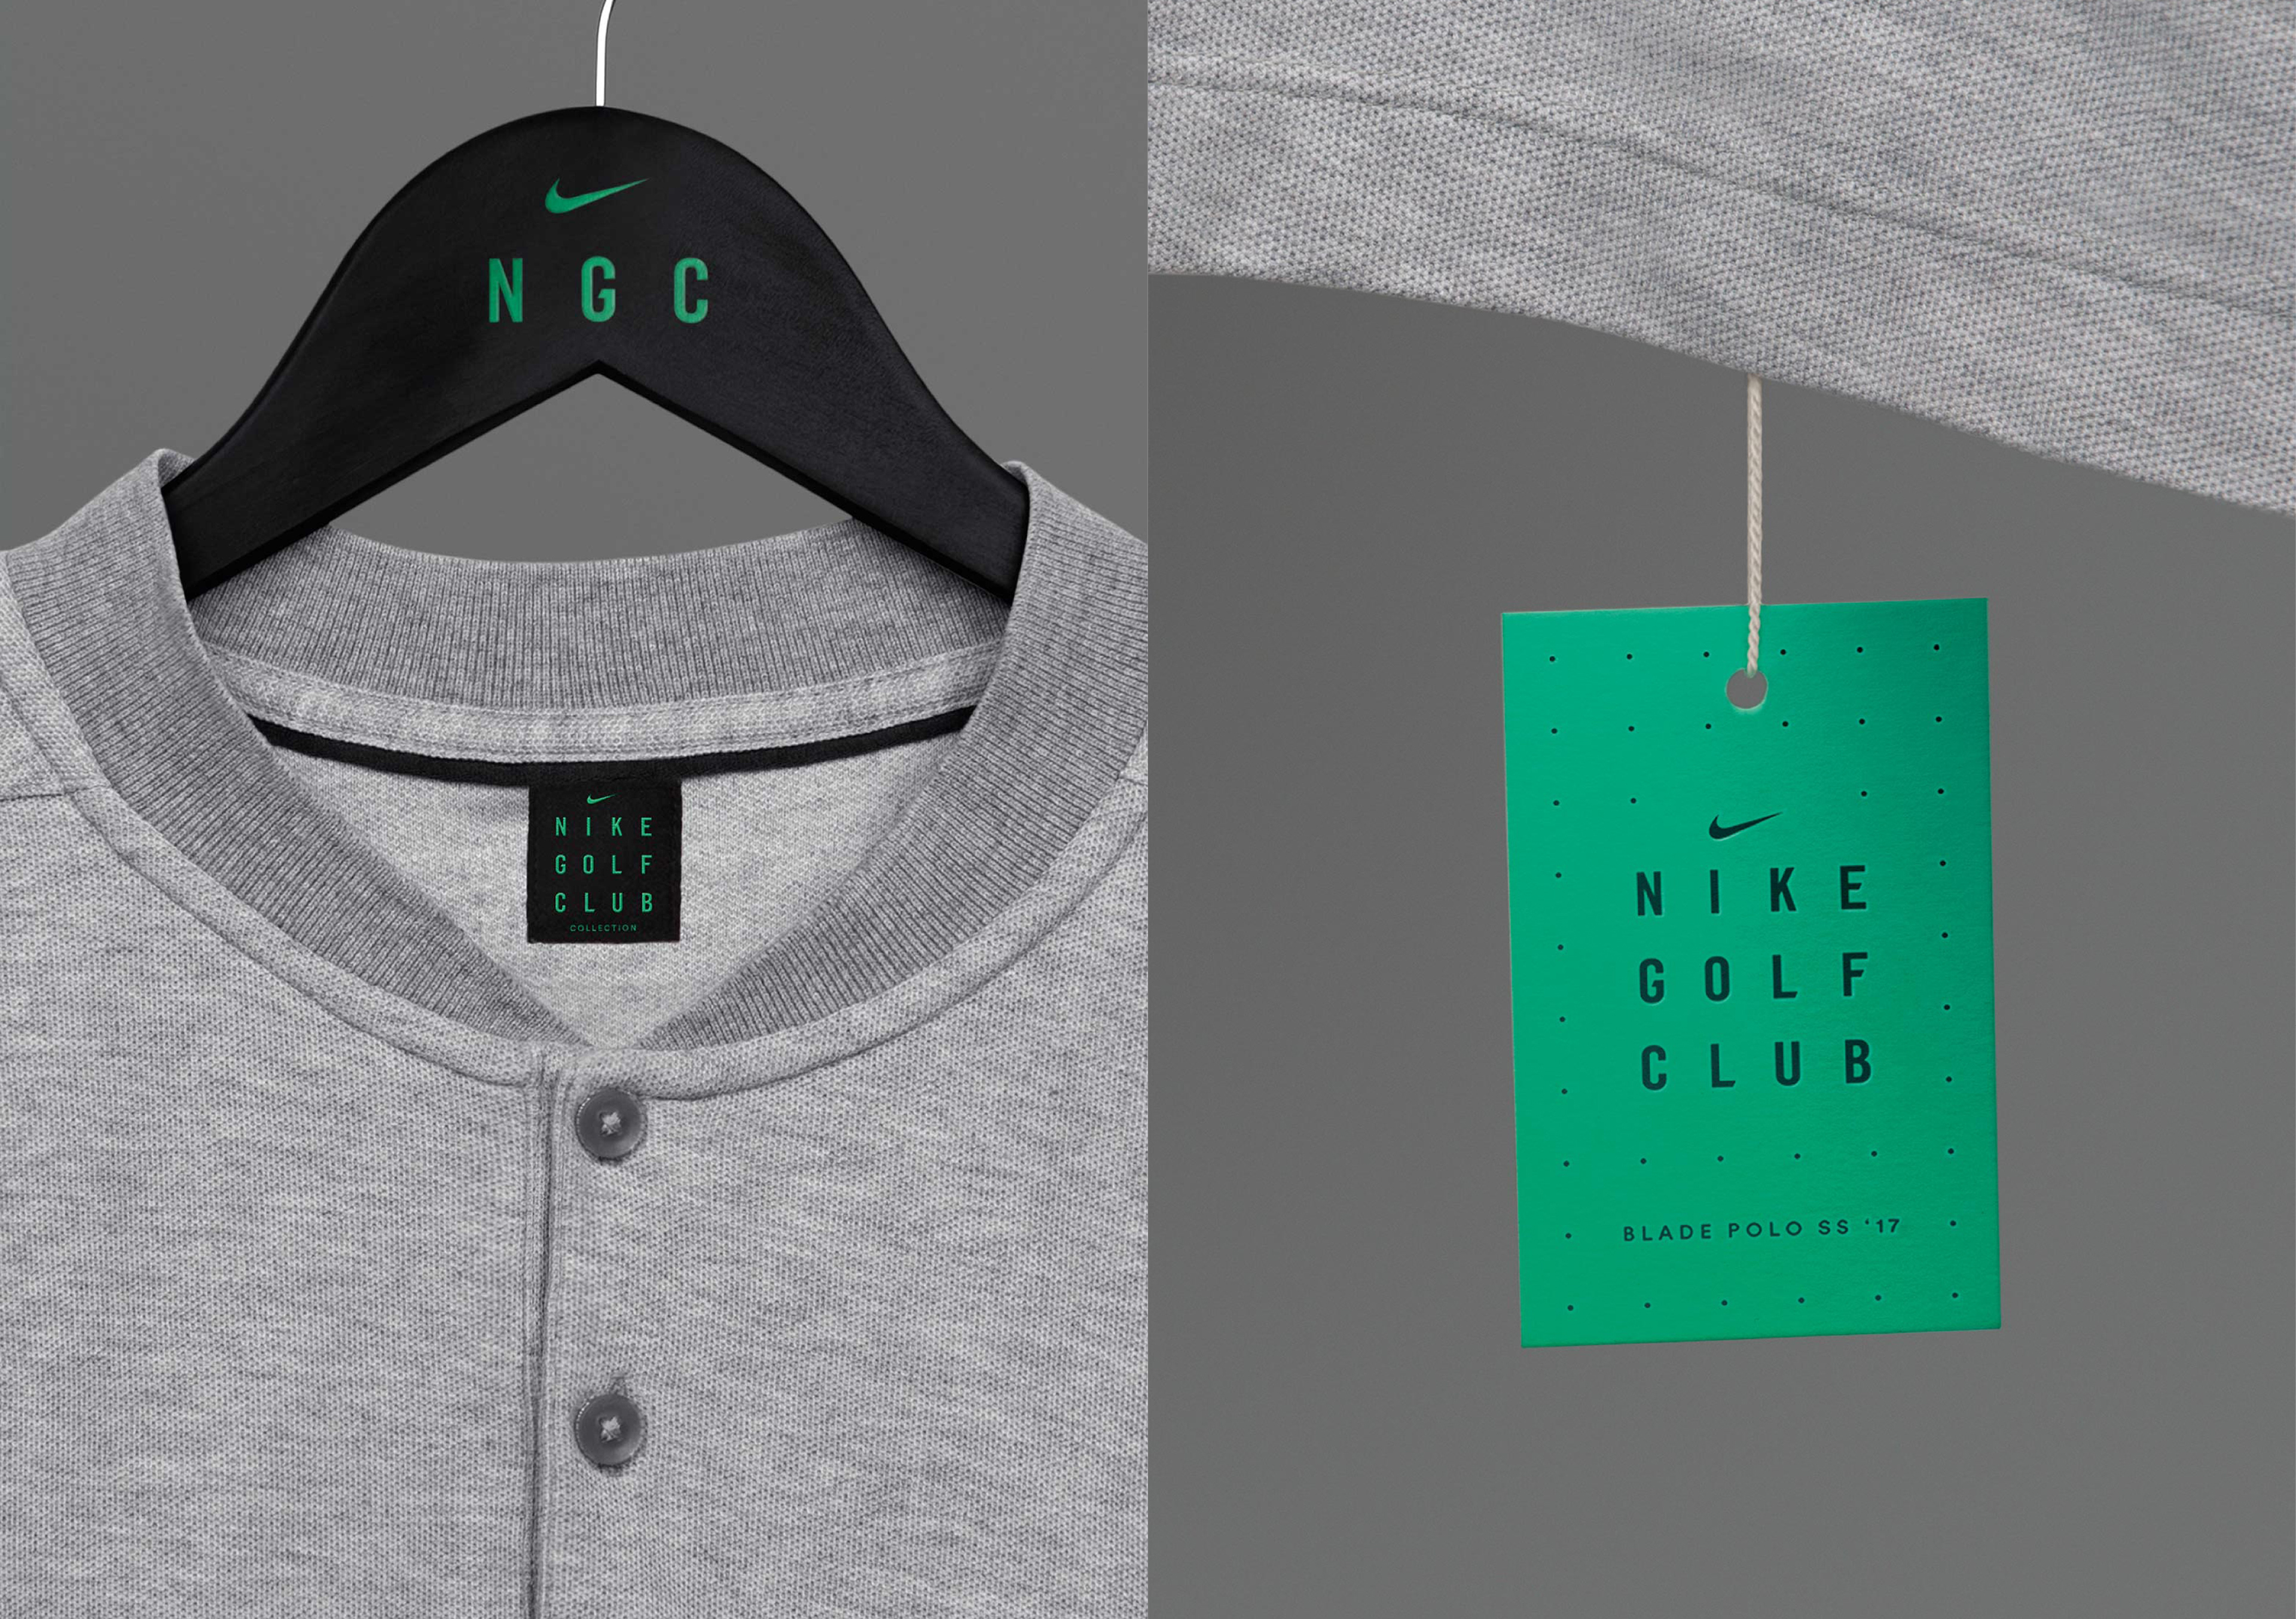 871faab6dd2 Nike   Nike Golf Club on Behance